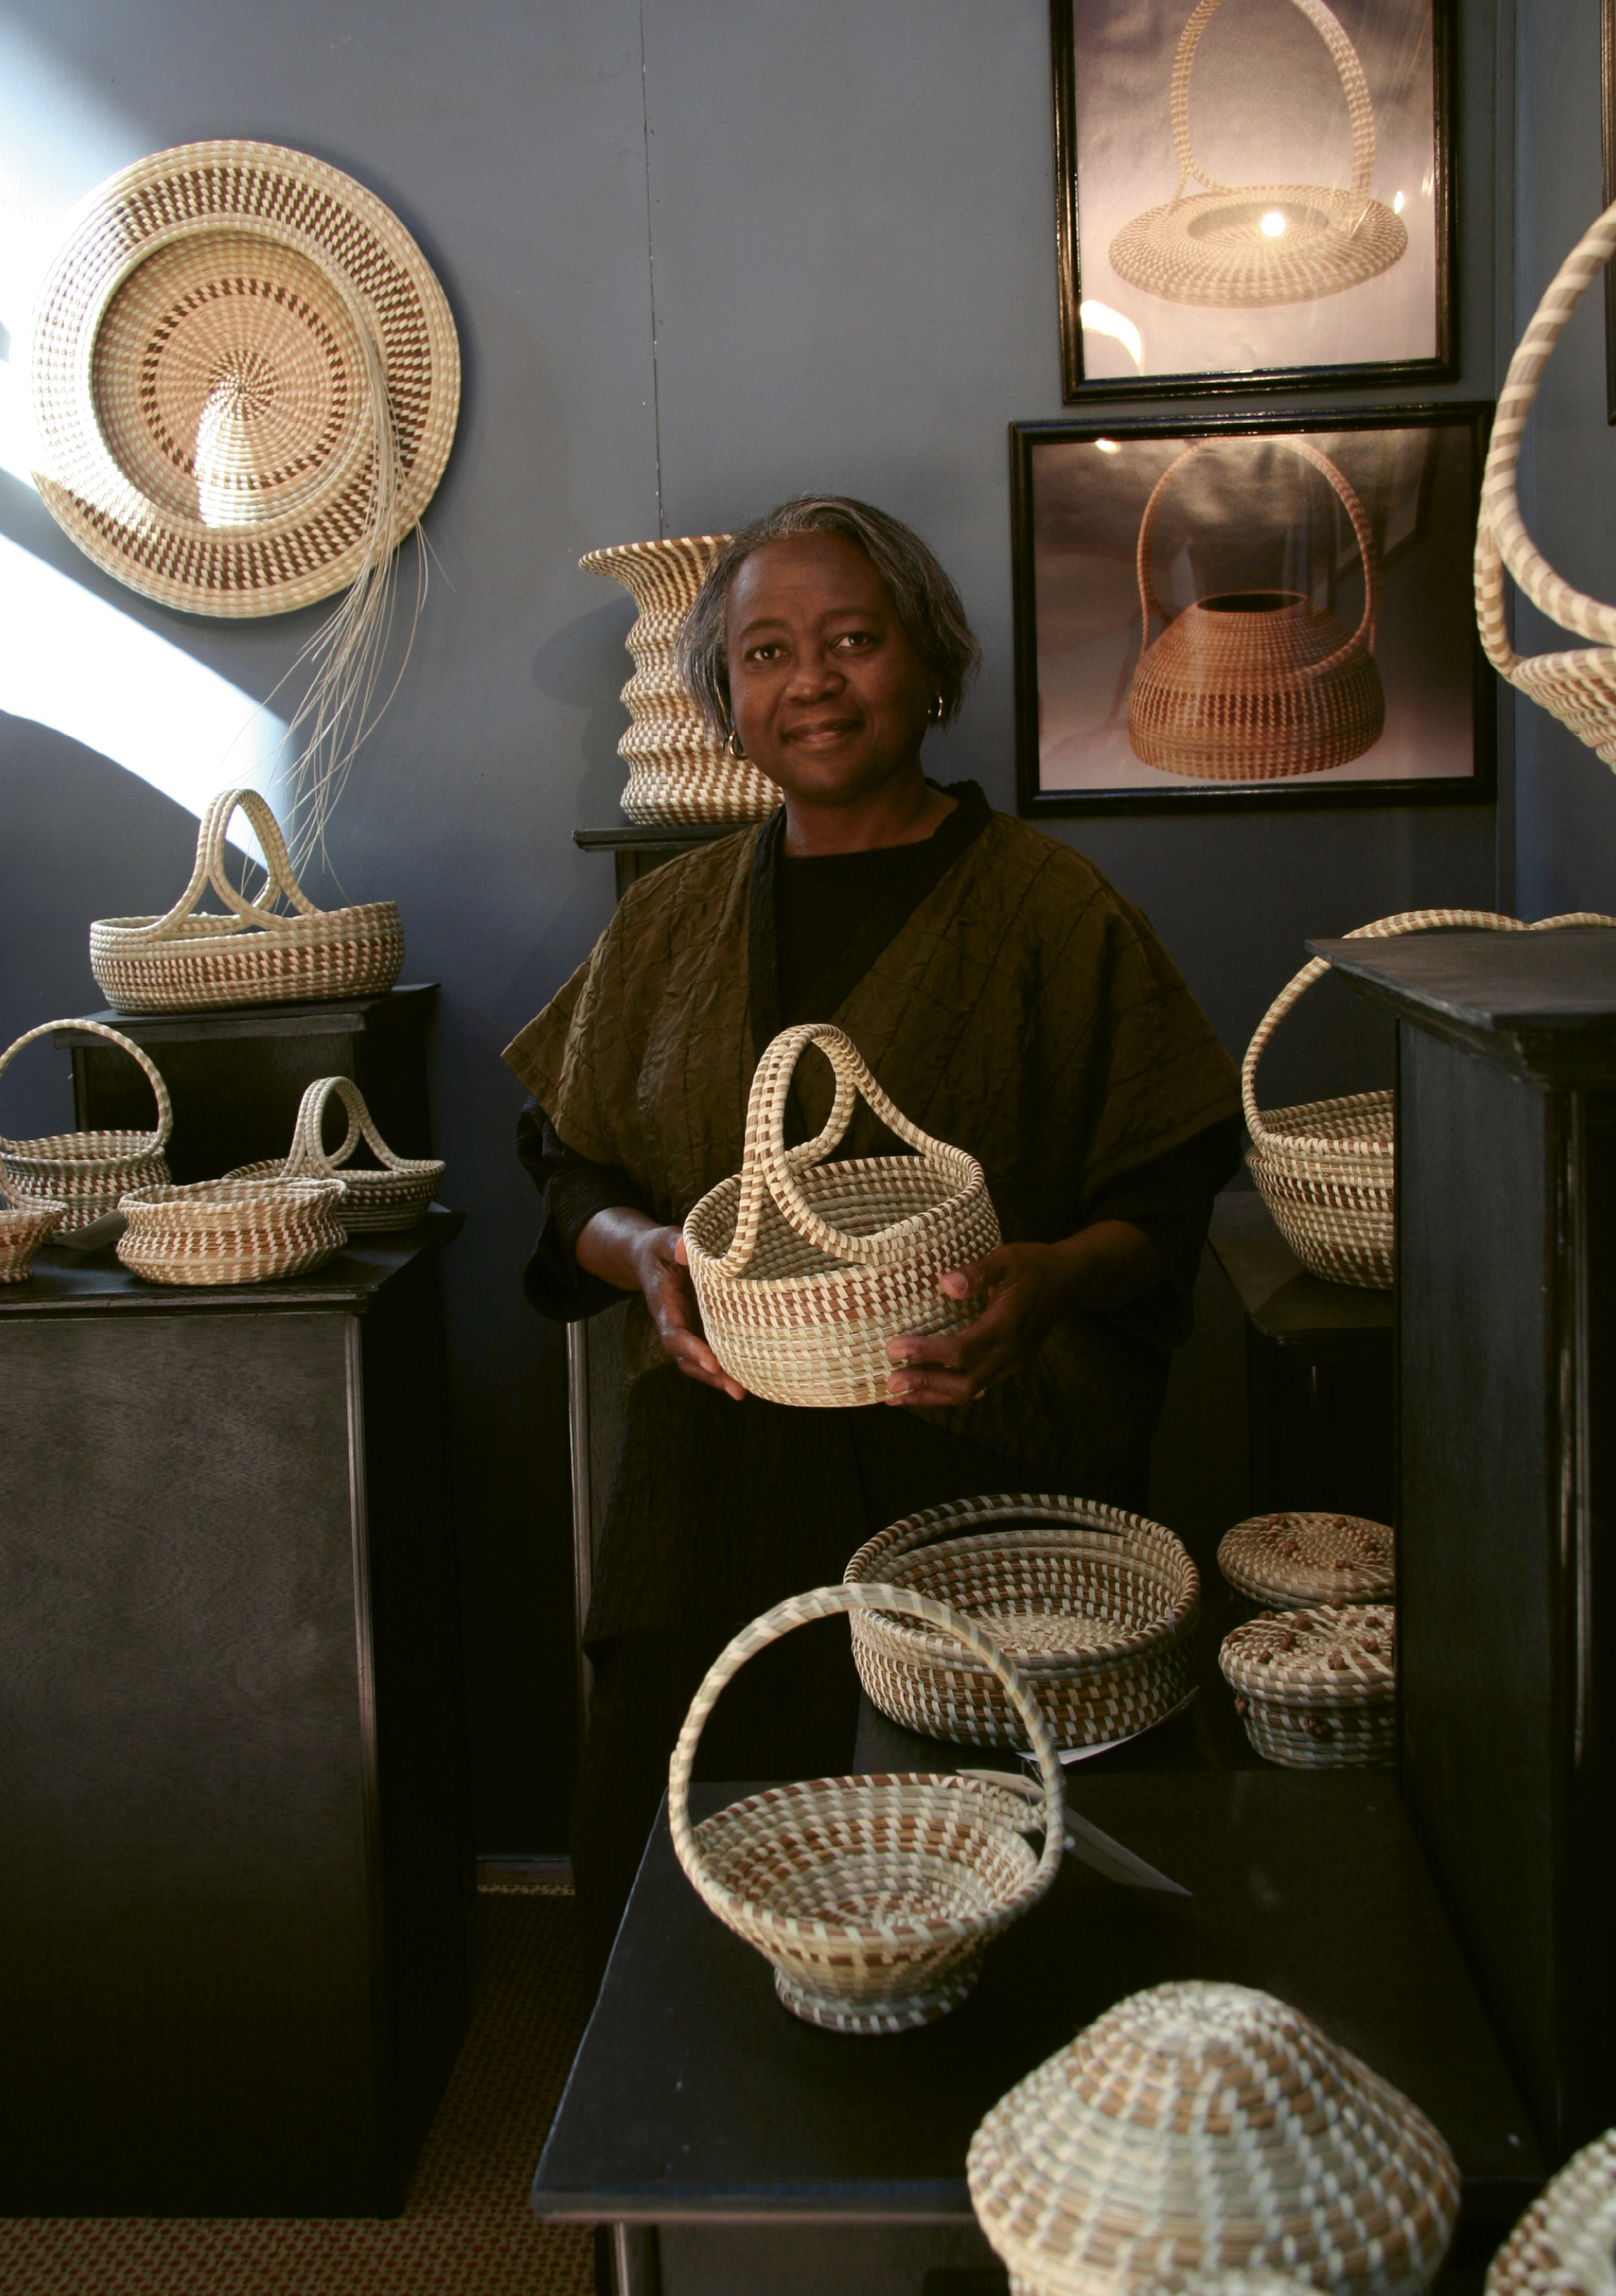 Artful Precision: Jackson's baskets are true to traditional forms, but she weaves innovative artistry into their execution. Meticulous with her choice of materials and precise in her stitches, Jackson's work demonstrates restraint and discipline, with hints of whimsy. Jackson is pictured here at the Smithsonian Craft Show in 2006.